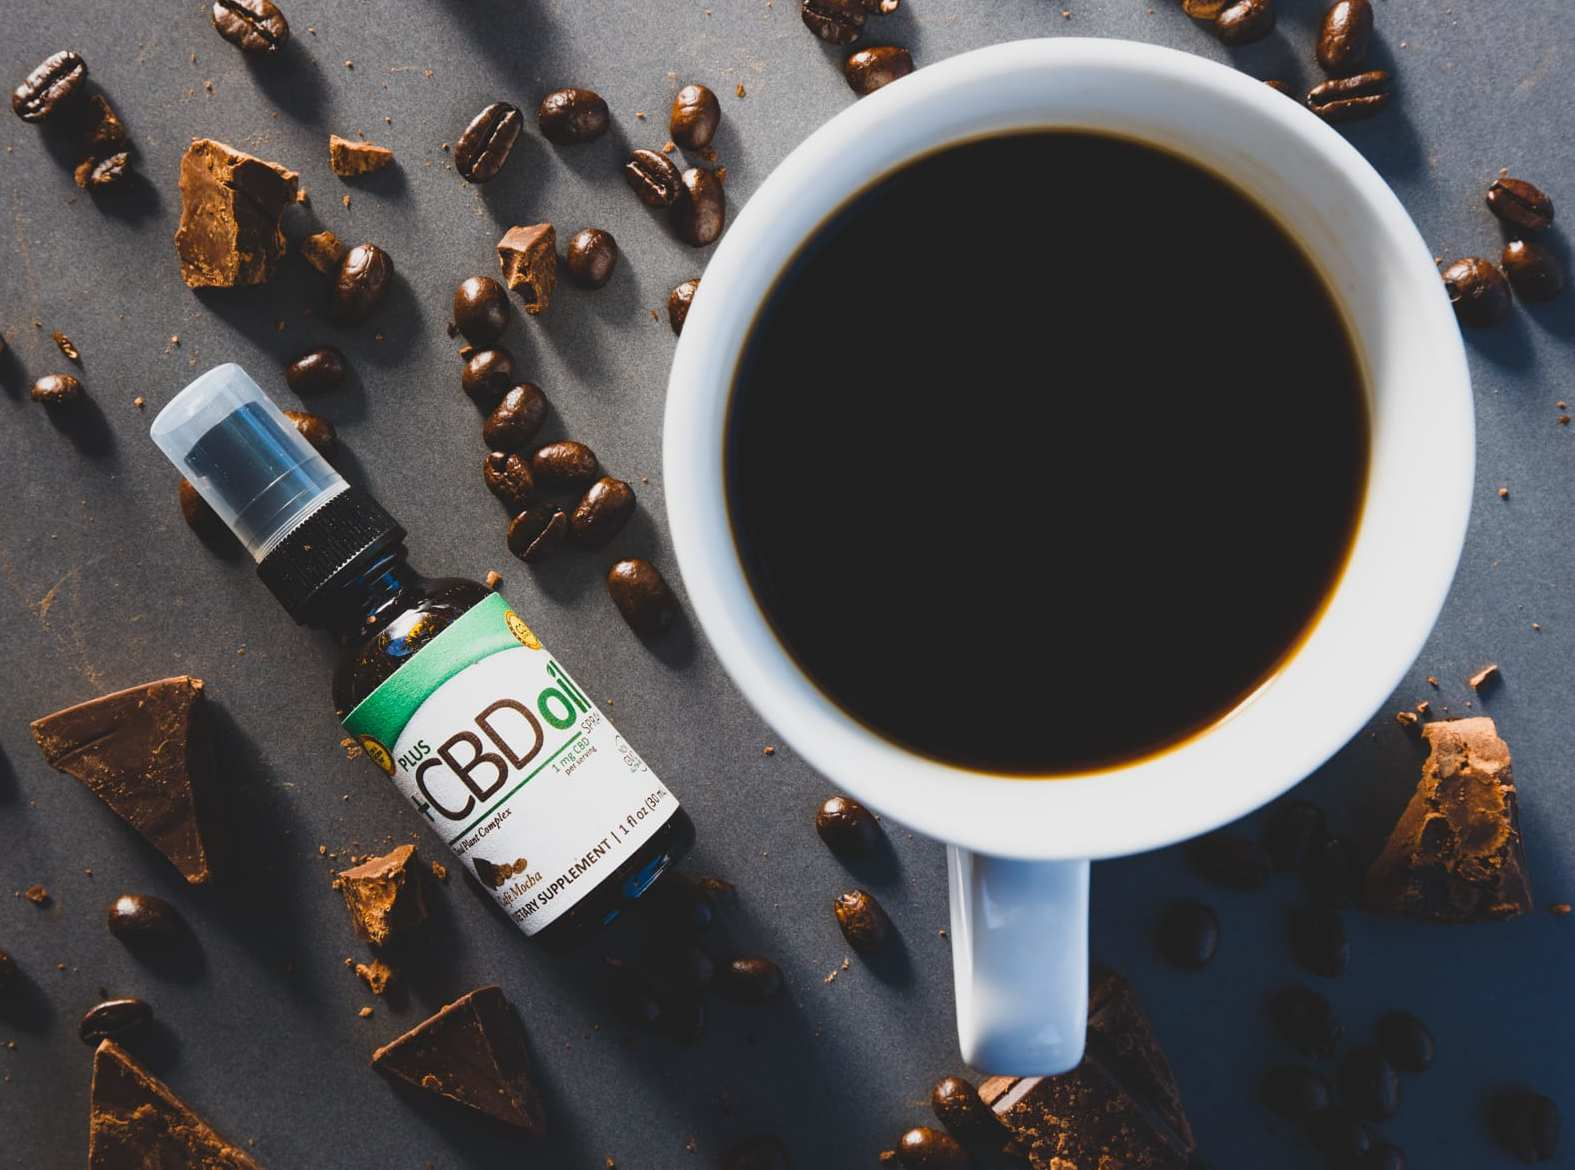 Bottles of PlusCBD Cafe Mocha Spray sits near a cup of black coffee and scattered coffee beans and chocolate chunks. PlusCBD Cafe Mocha Spray helped our review team start our day with a relaxing and flavorful cup.